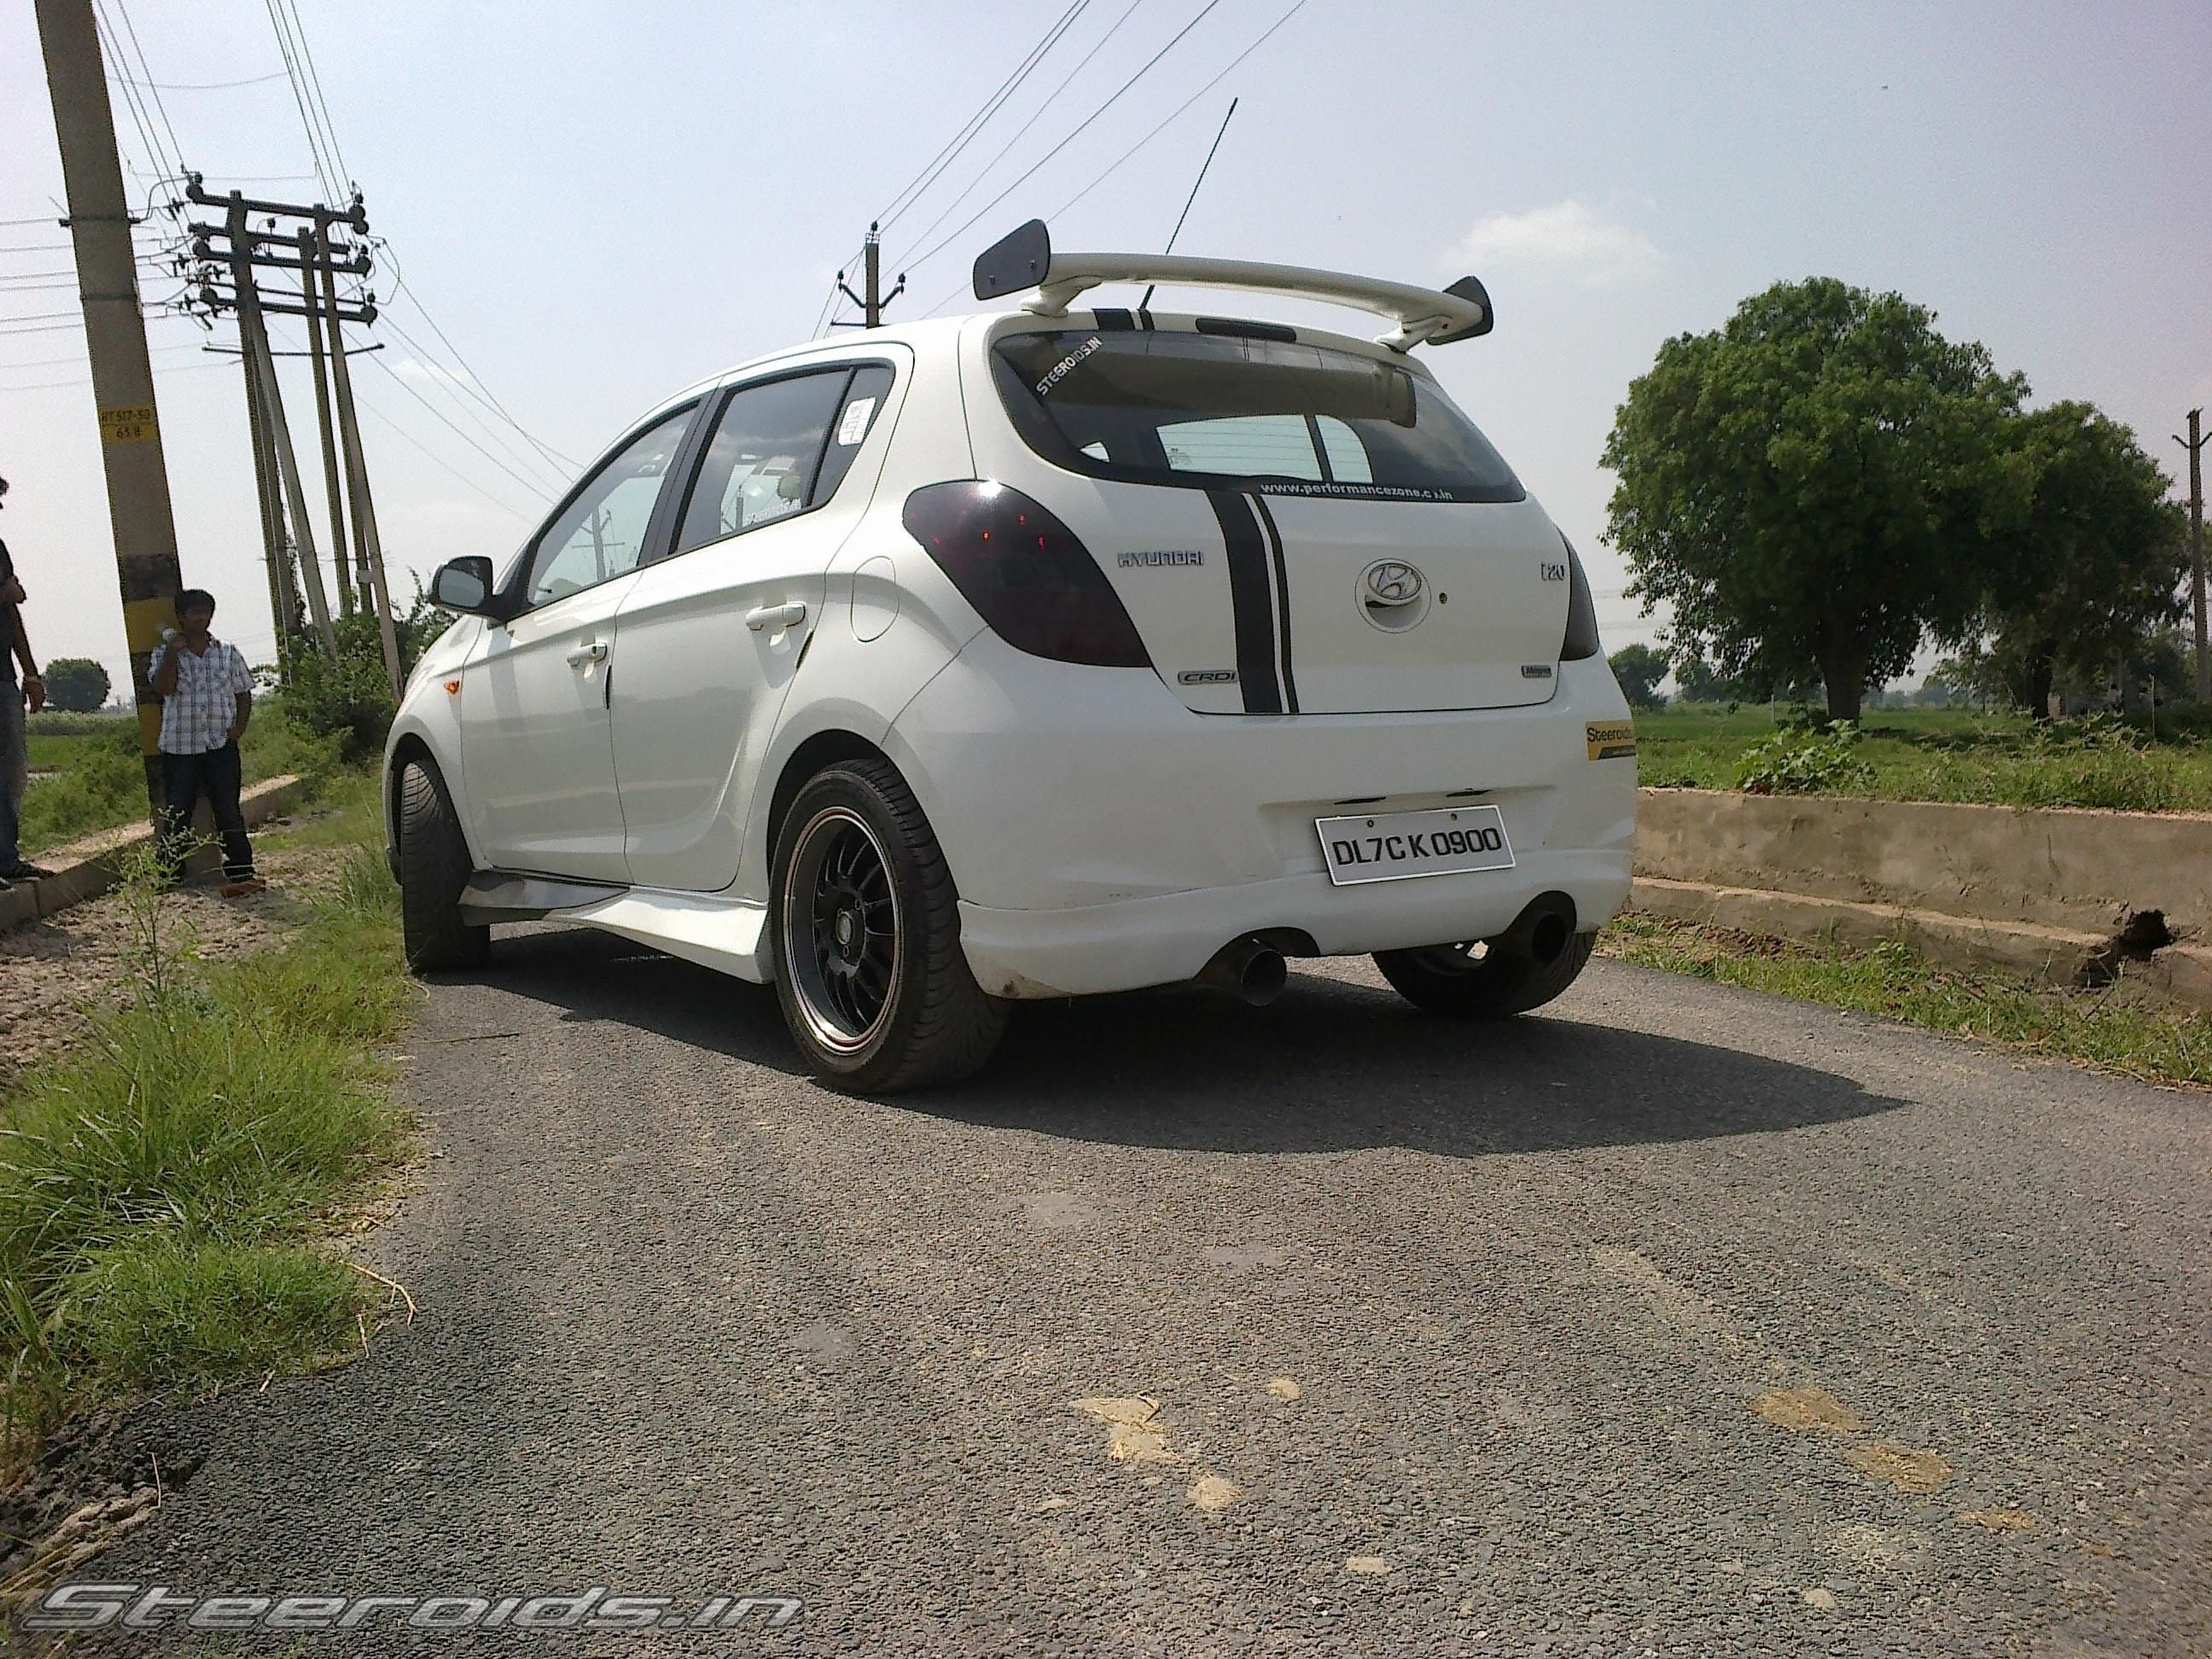 Steeroids In Driven By Passion Hyundai Modified Cars Car Sharing